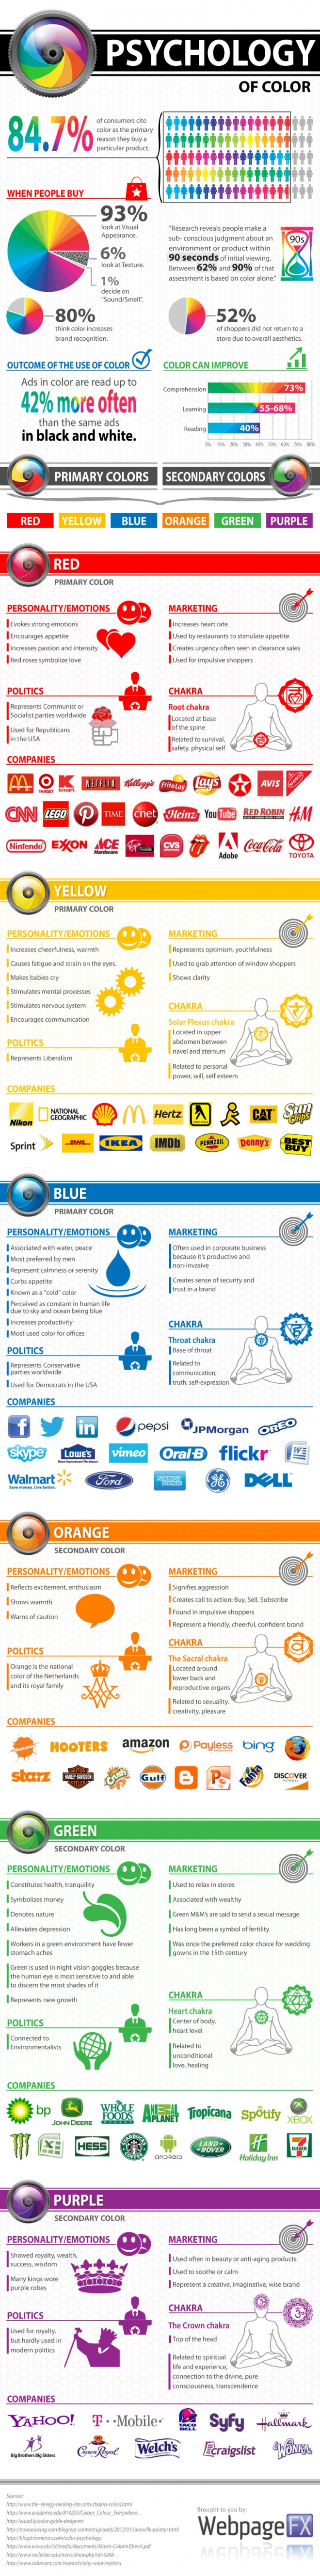 http://www.webpagefx.com/blog/web-design/psychology-of-color-infographic/